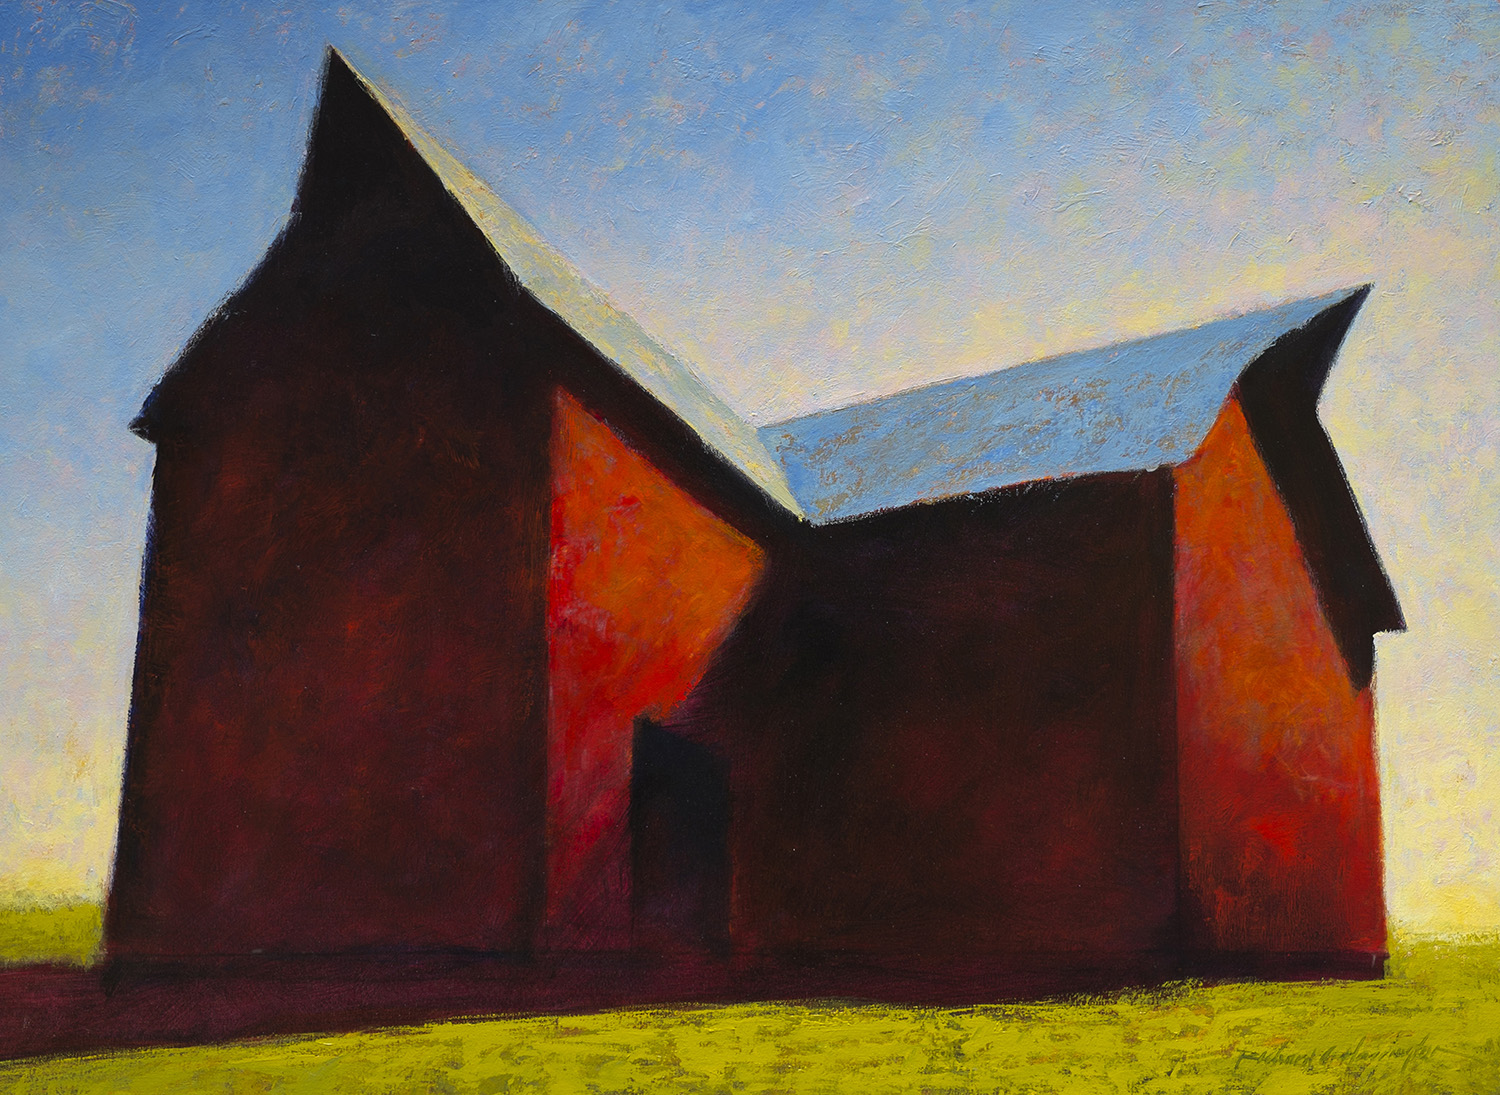 Late Afternoon, oil on canvas, 30 x 40 inches. Available through  Xanadu Gallery .